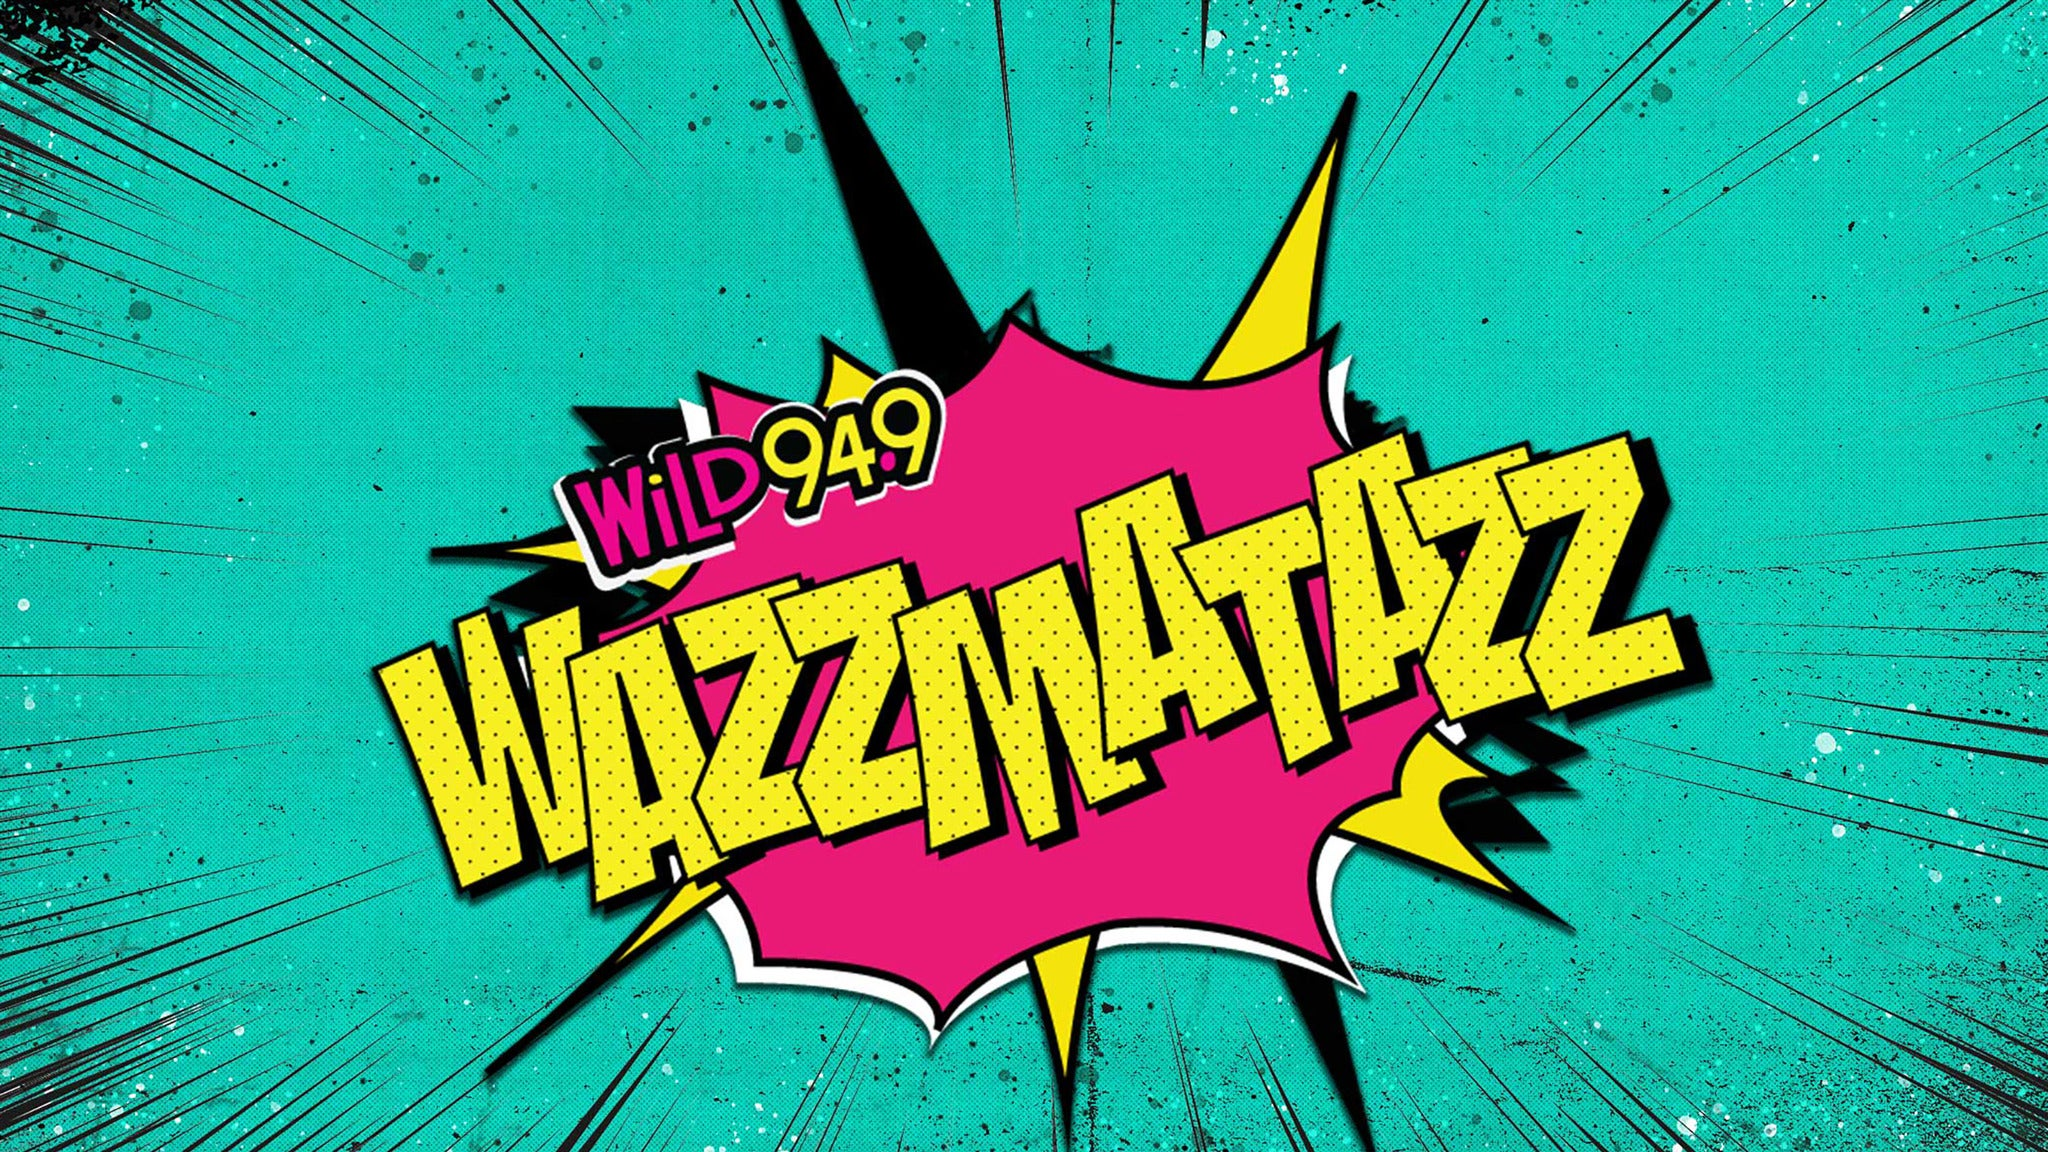 Wild 94.9 presents WAZZMATAZZ feat. Halsey, Ellie Goulding and more